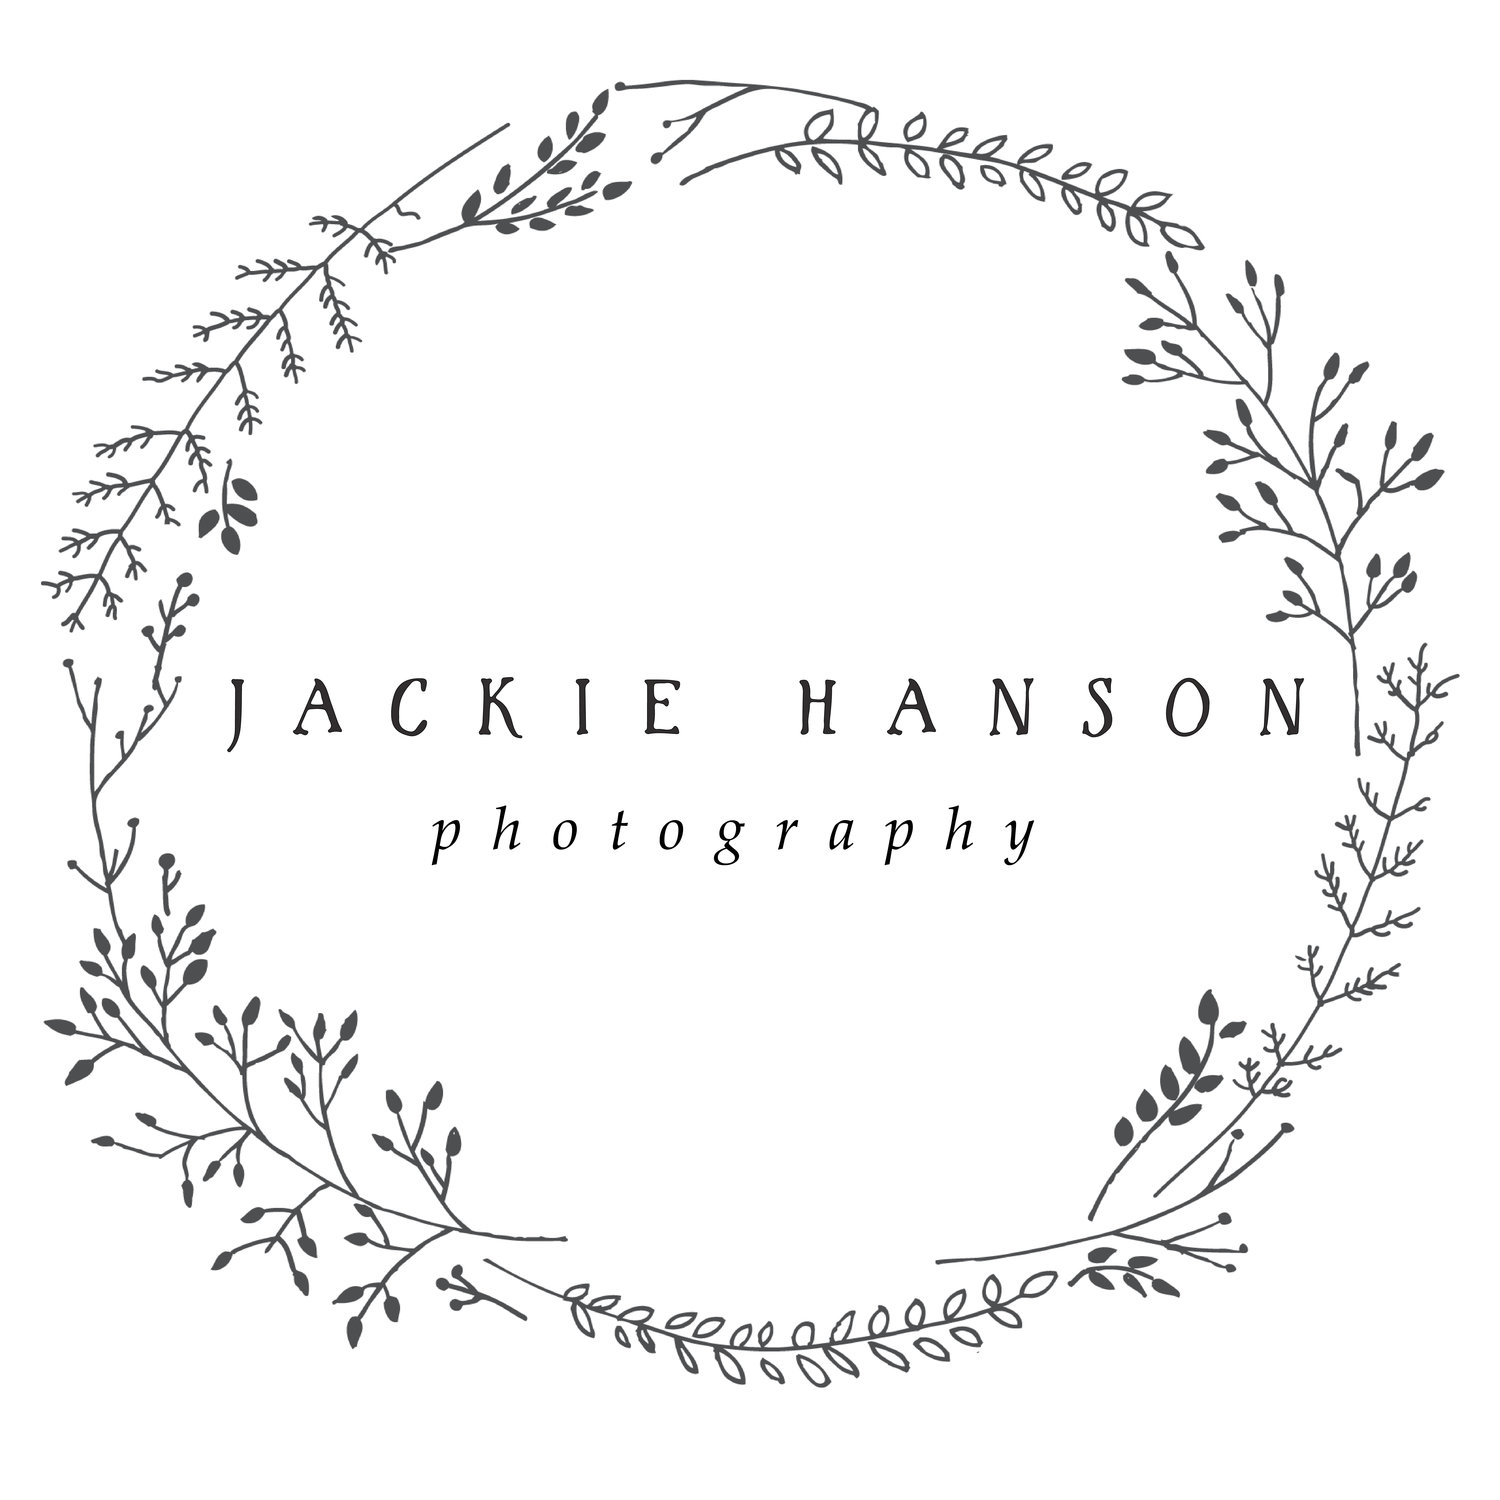 JACKIE HANSON PHOTOGRAPHY